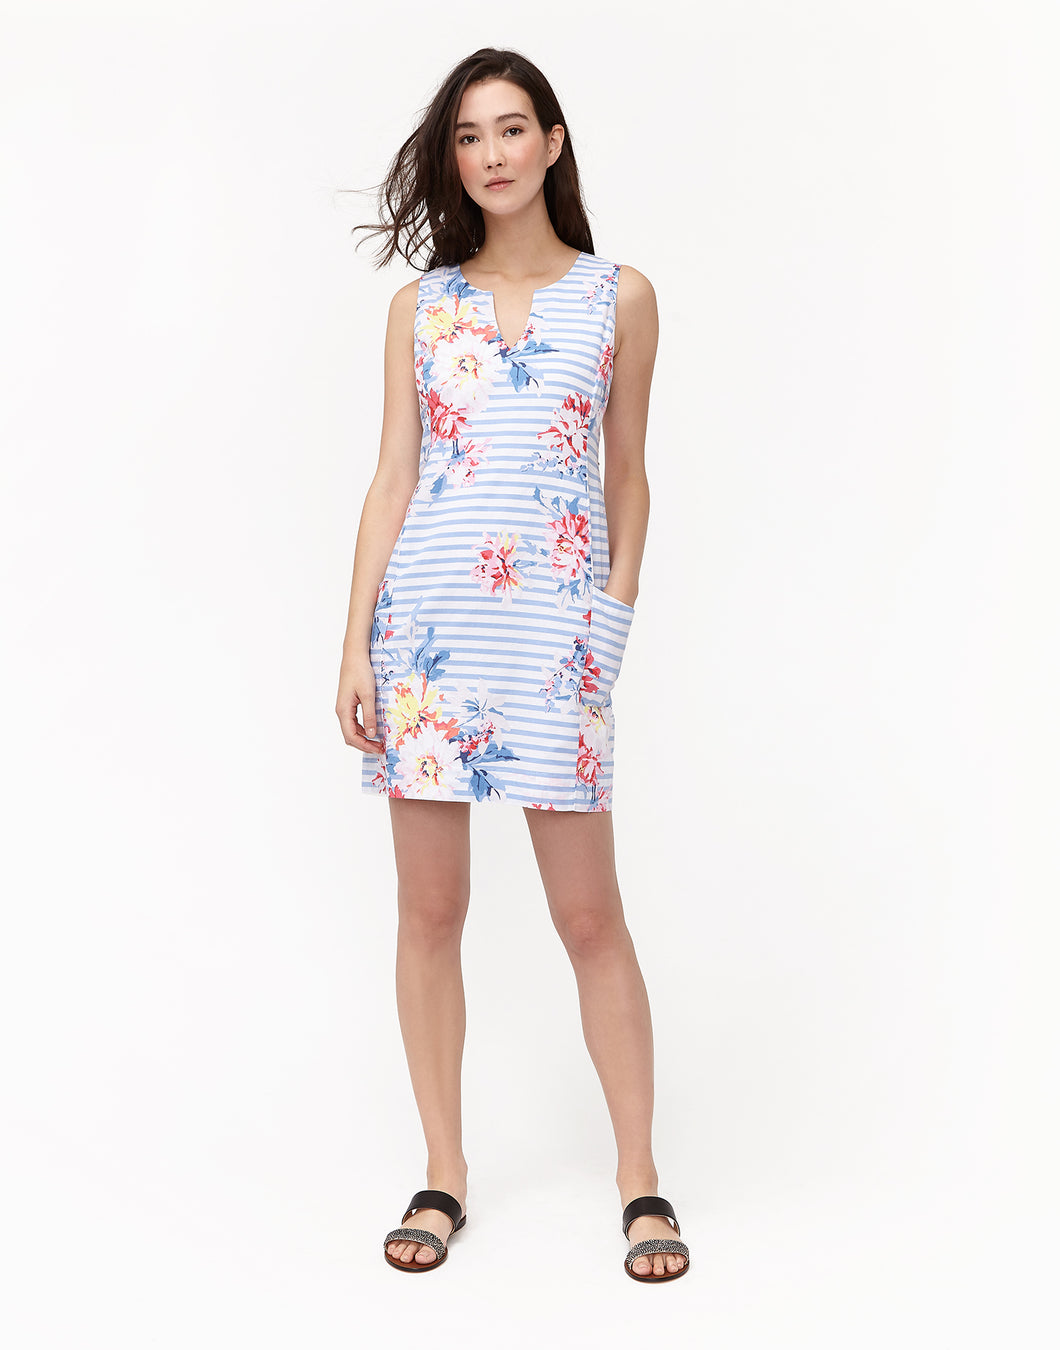 Joules Notch Neck Linen/ Cotton Printed Shift Dress - White Stripe Whitstable Floral